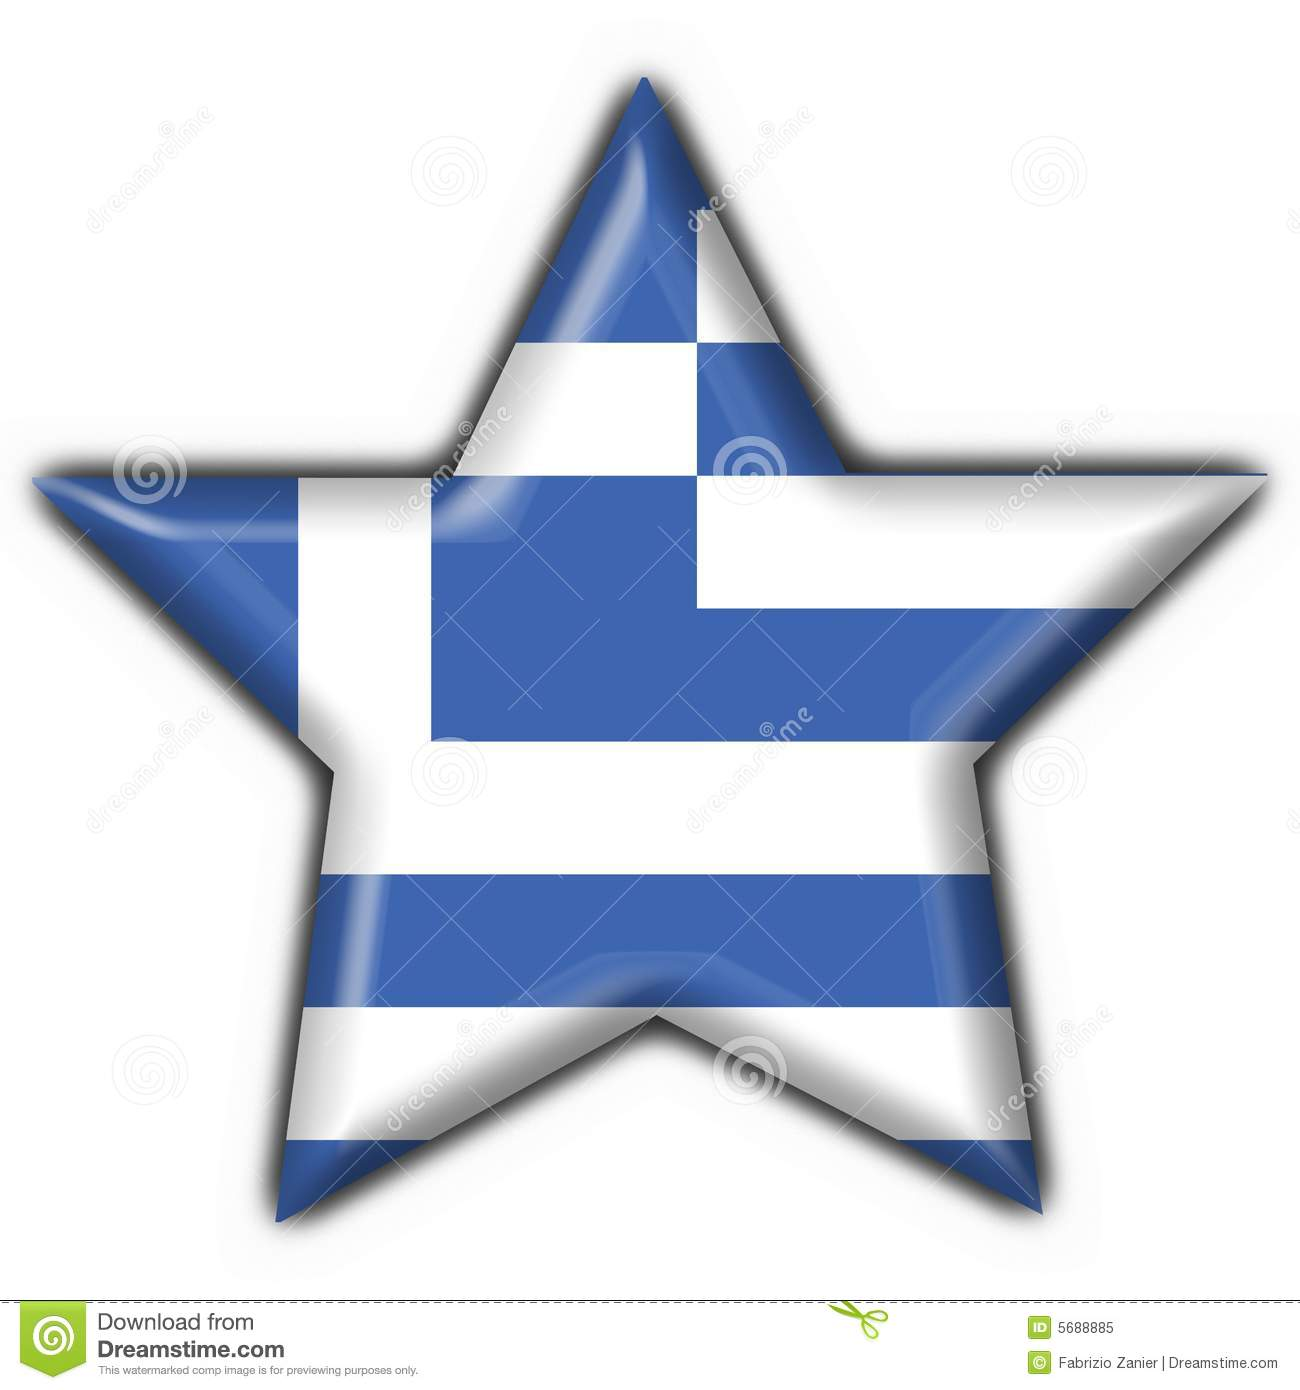 ... Button Flag Star Shape Royalty Free Stock Photo - Image: 5688885: dreamstime.com/royalty-free-stock-photo-greece-button-flag-star...